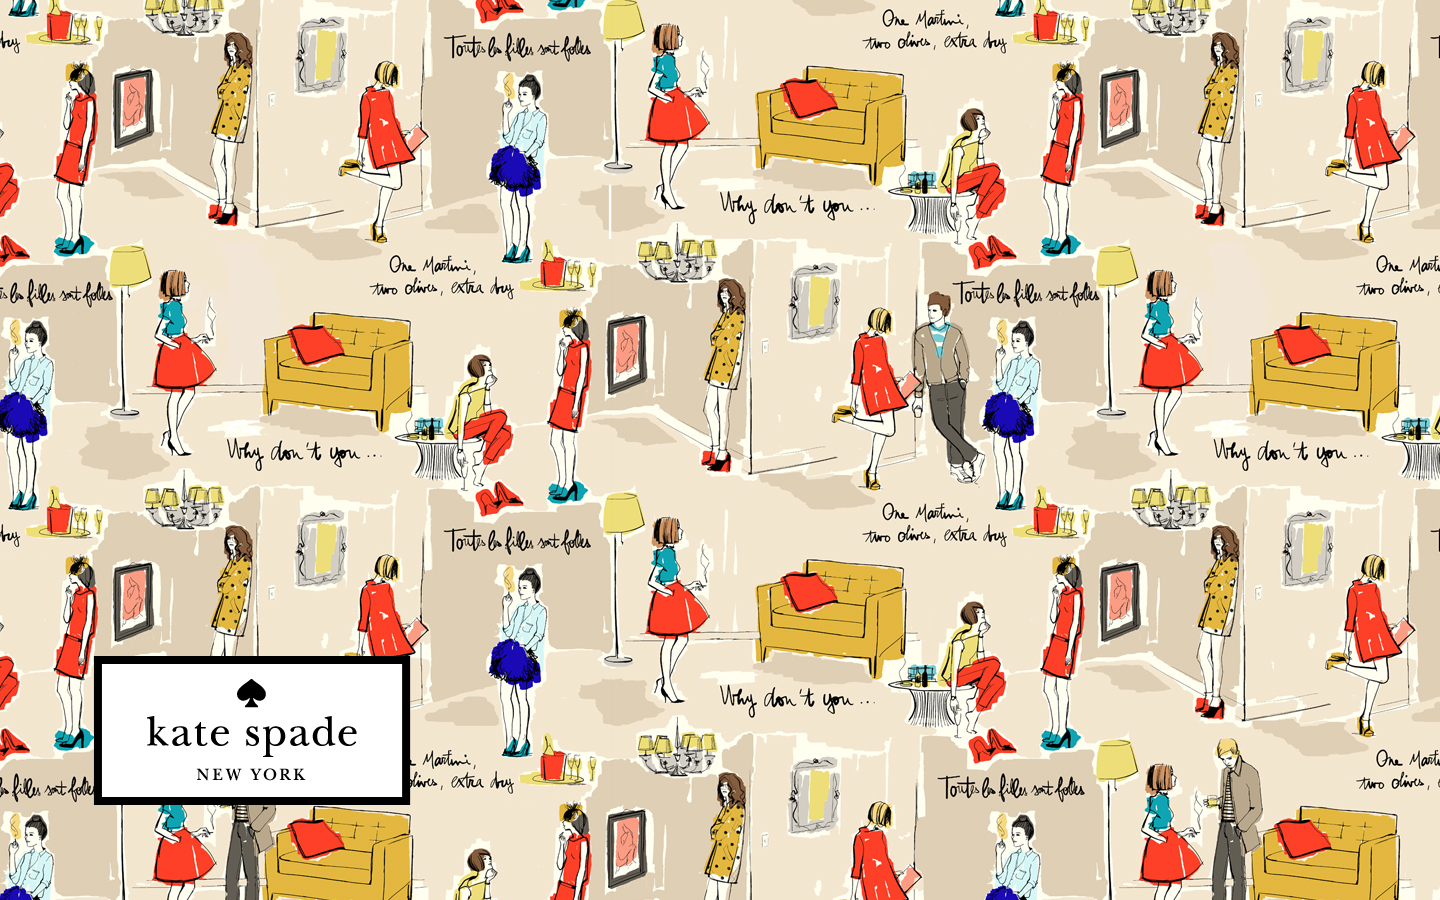 Connu CanadianPrep: Kate Spade Wallpaper PX94